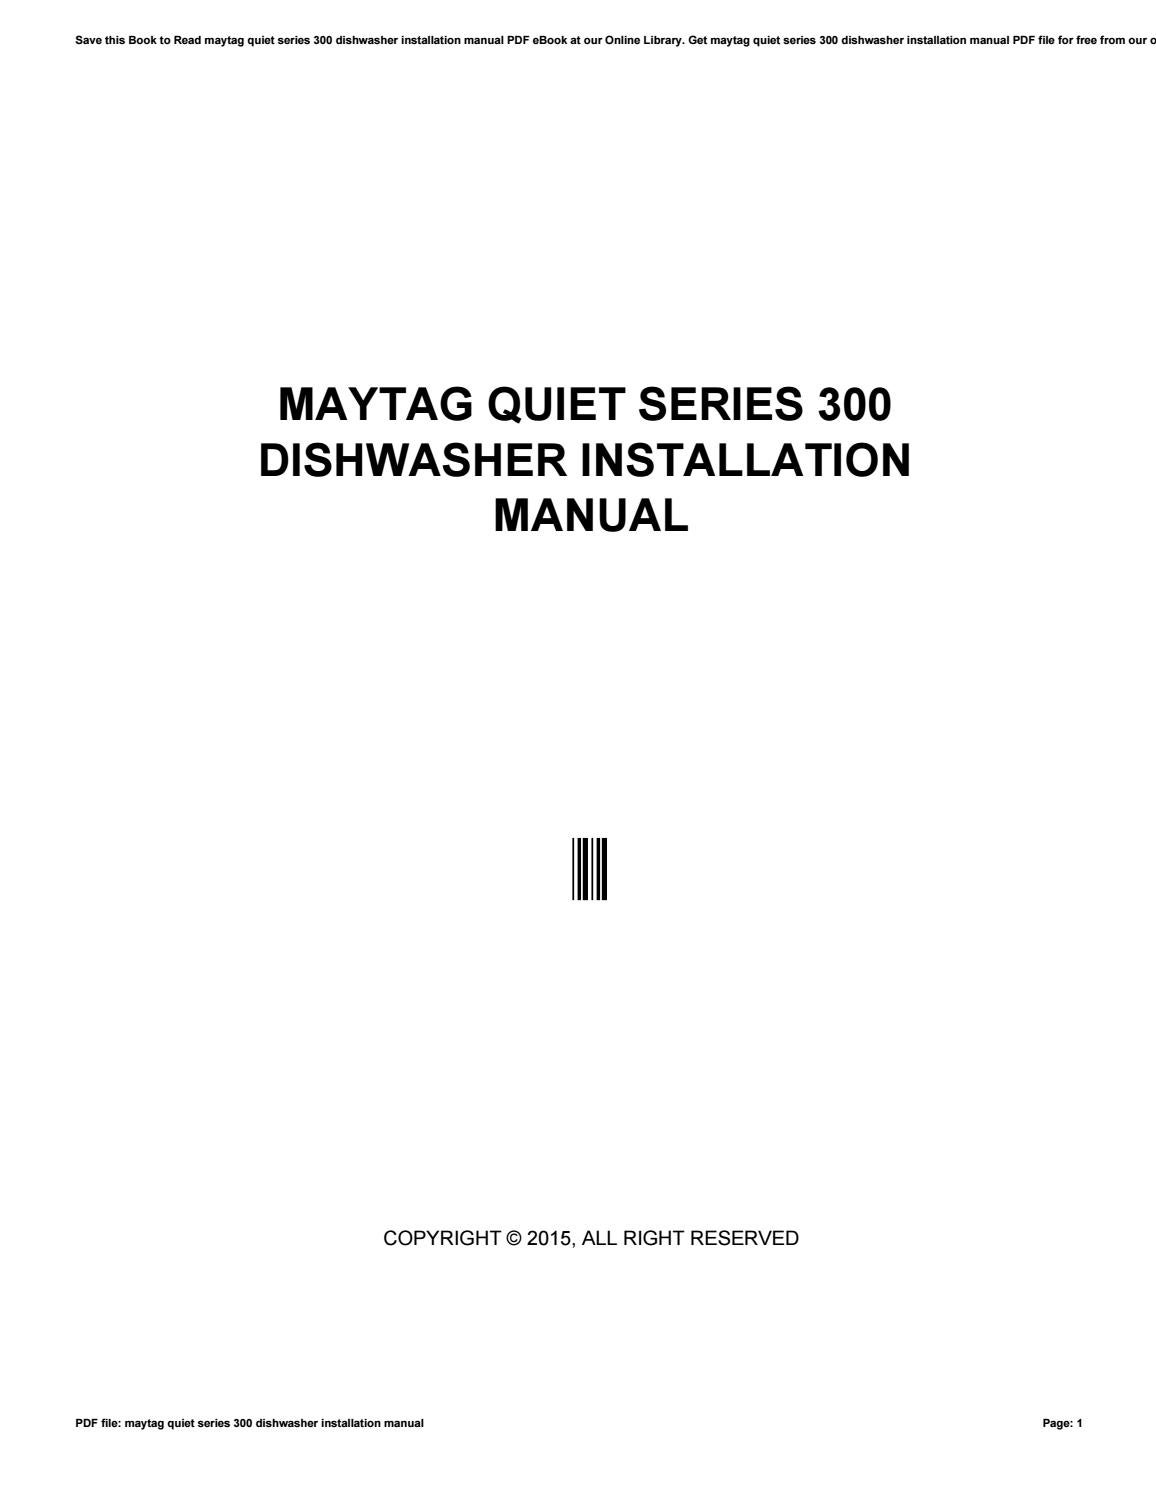 Maytag Dishwasher Quiet Series 300 Wiring Diagram